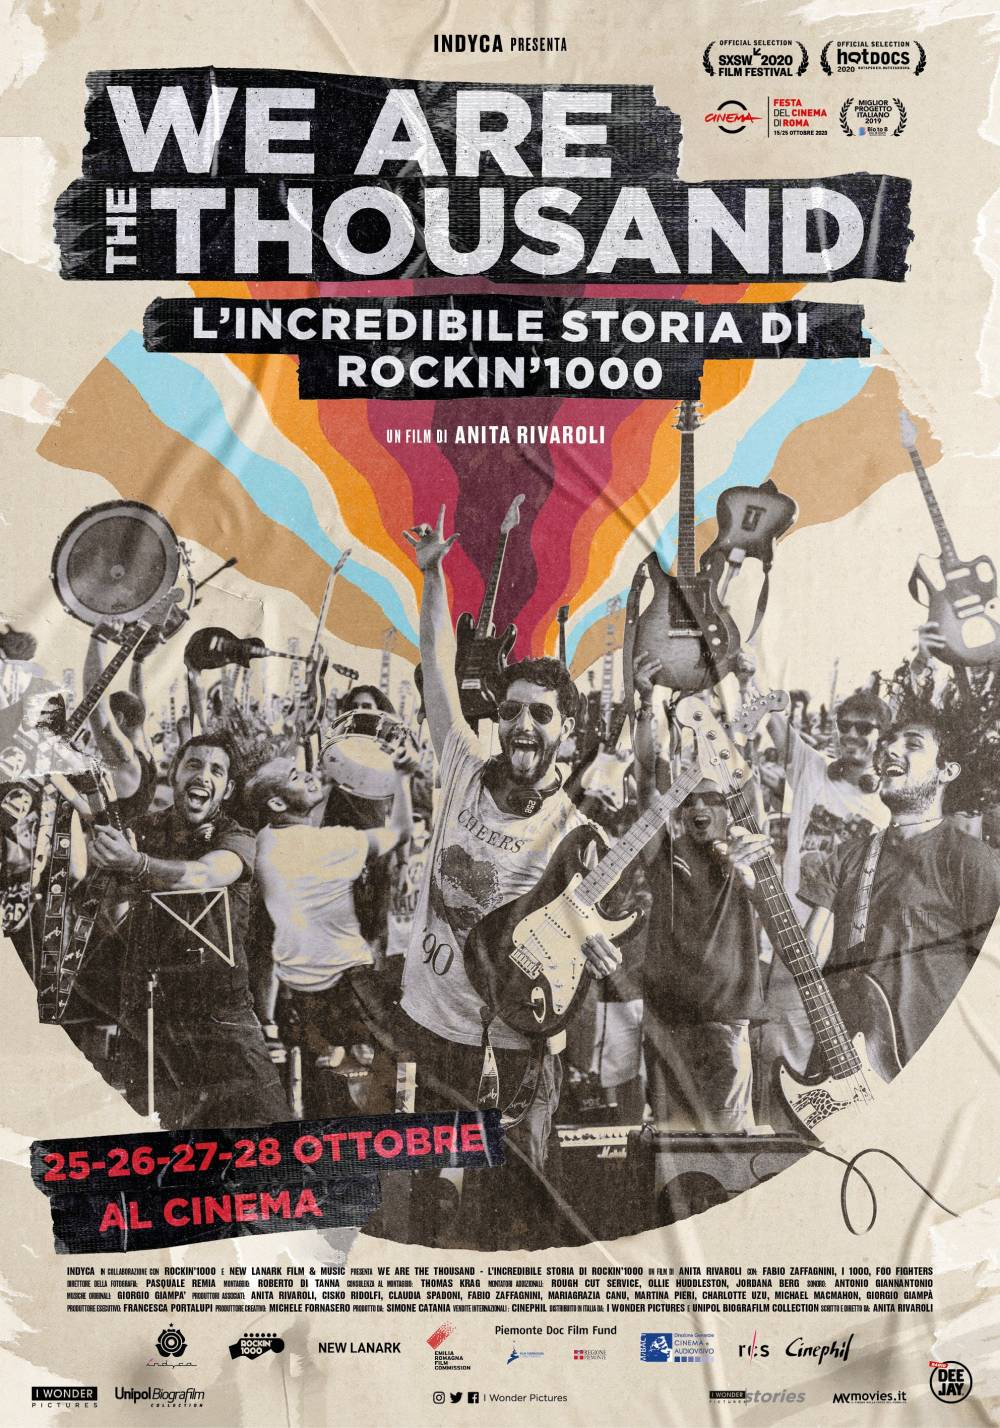 We Are The Thousand L'incredibile storia di Rockin'1000